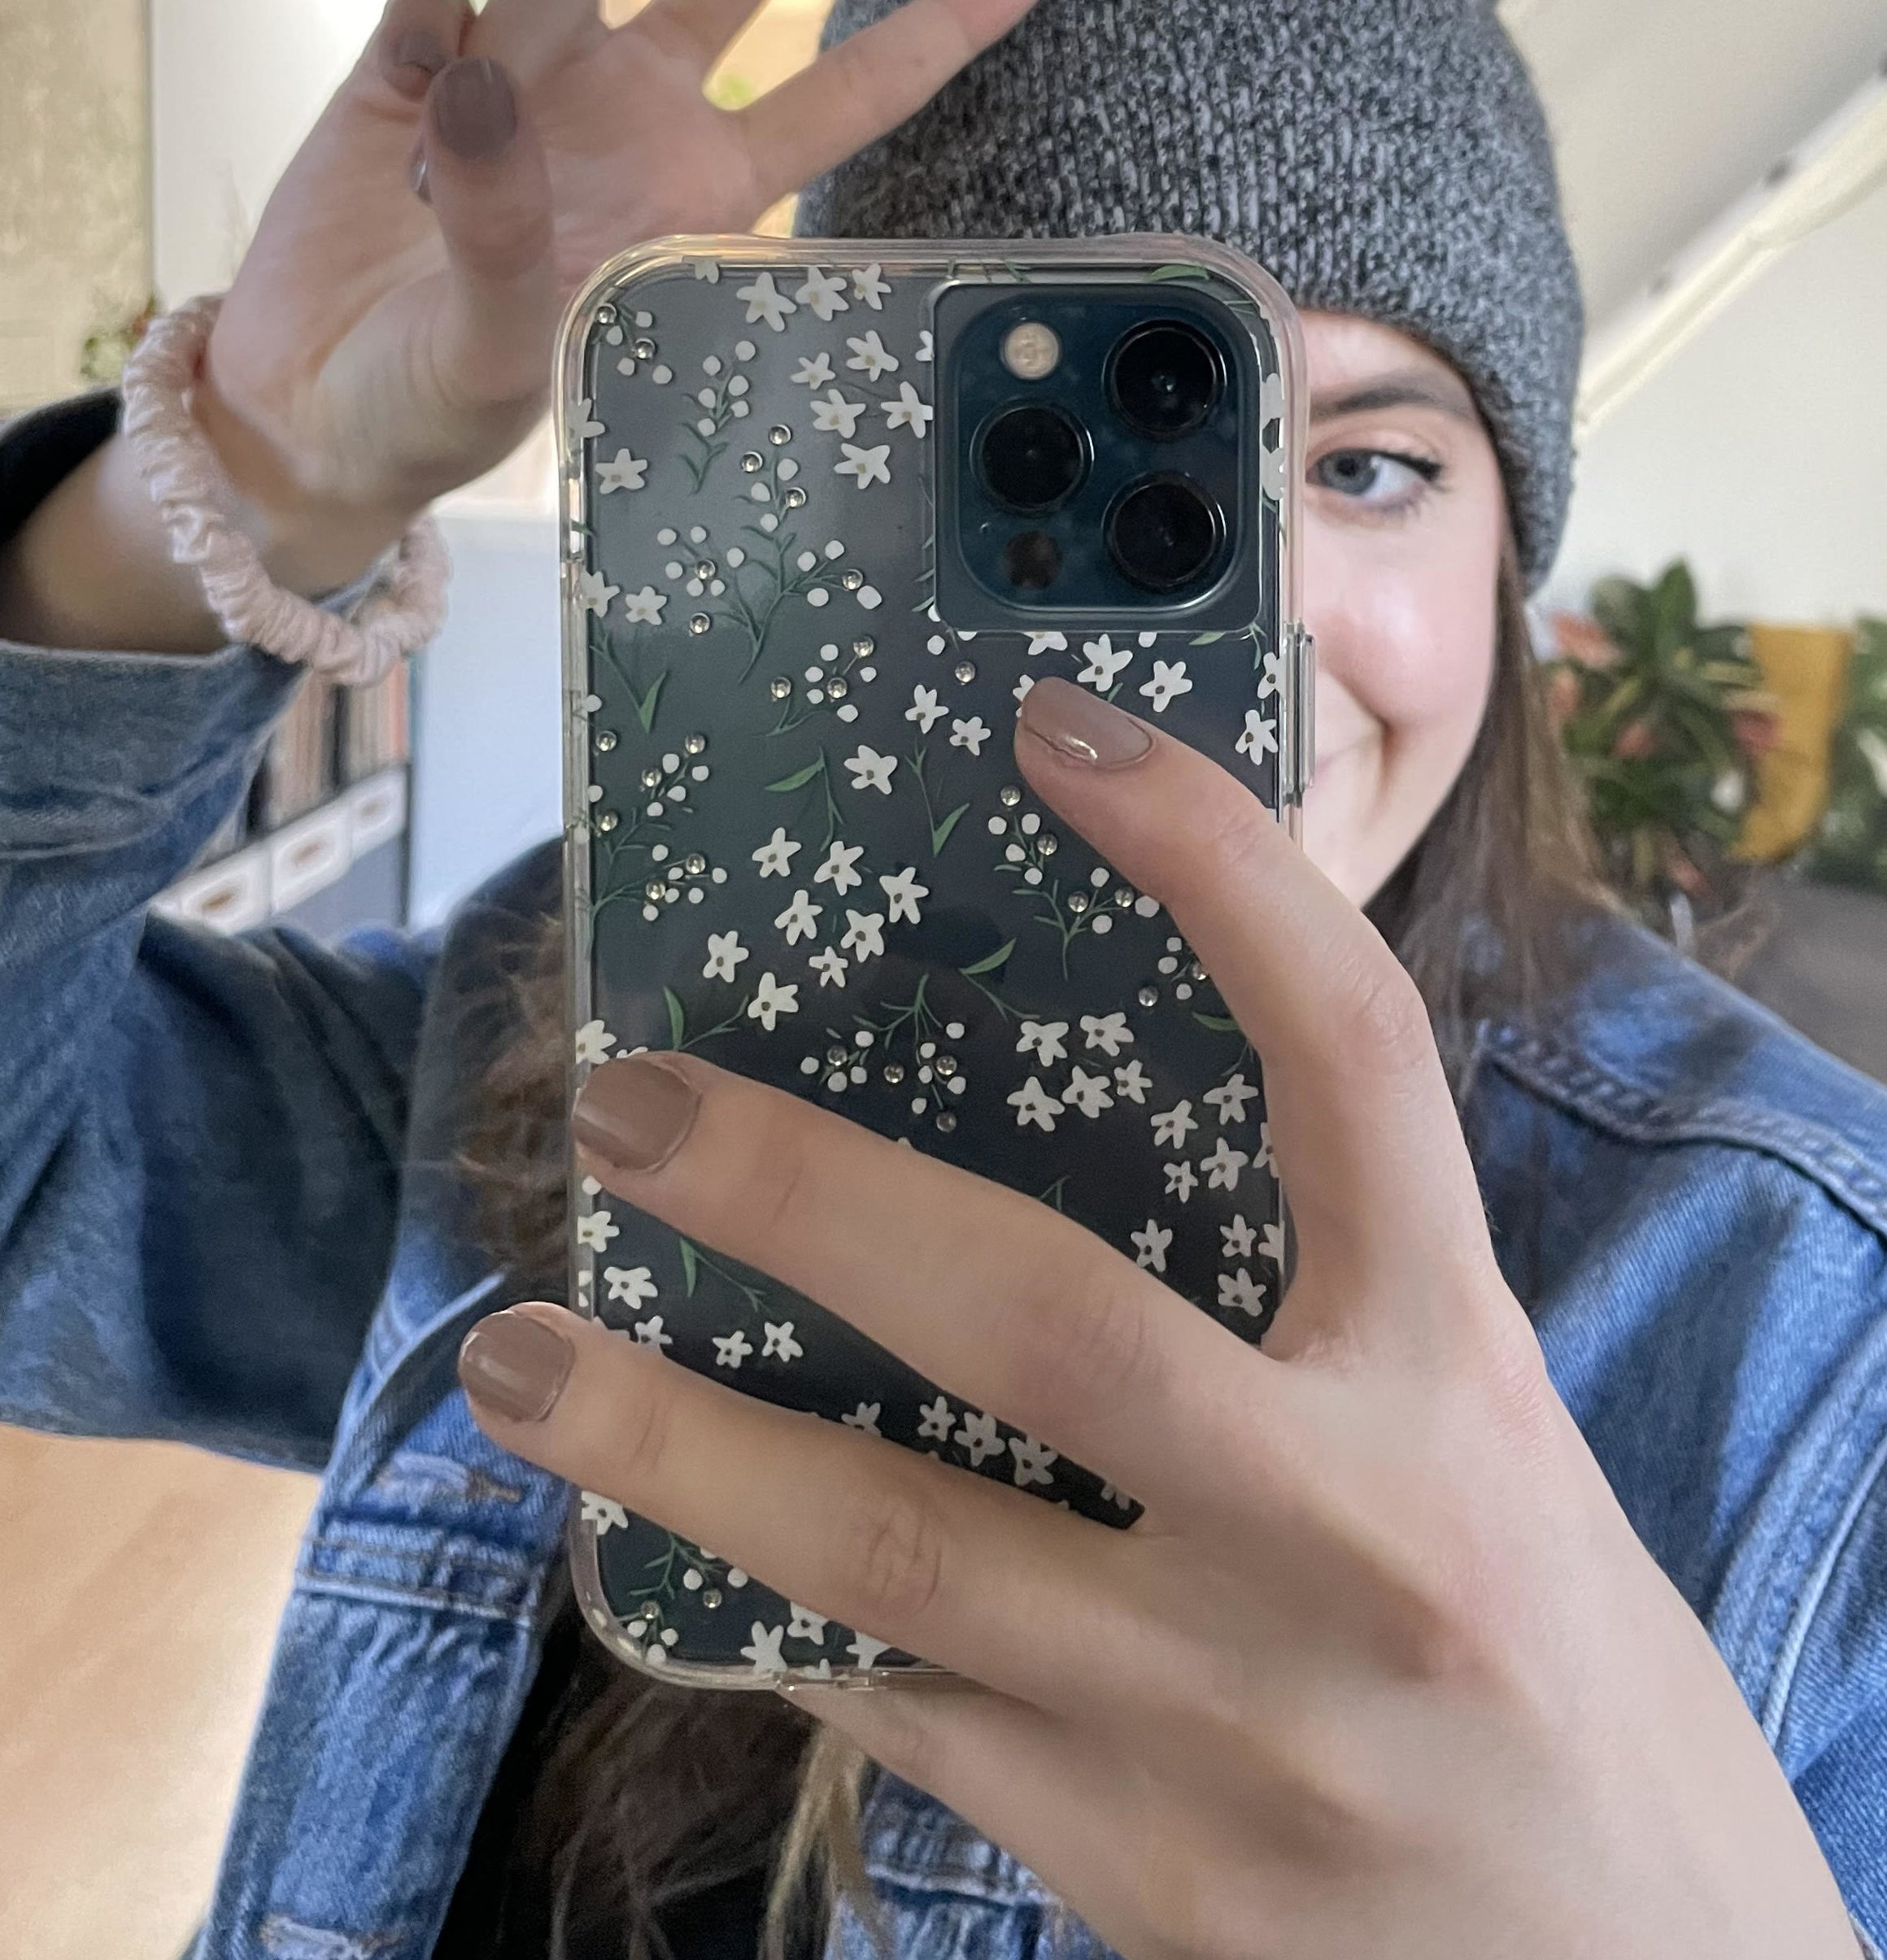 A person holding their phone and taking a selfie